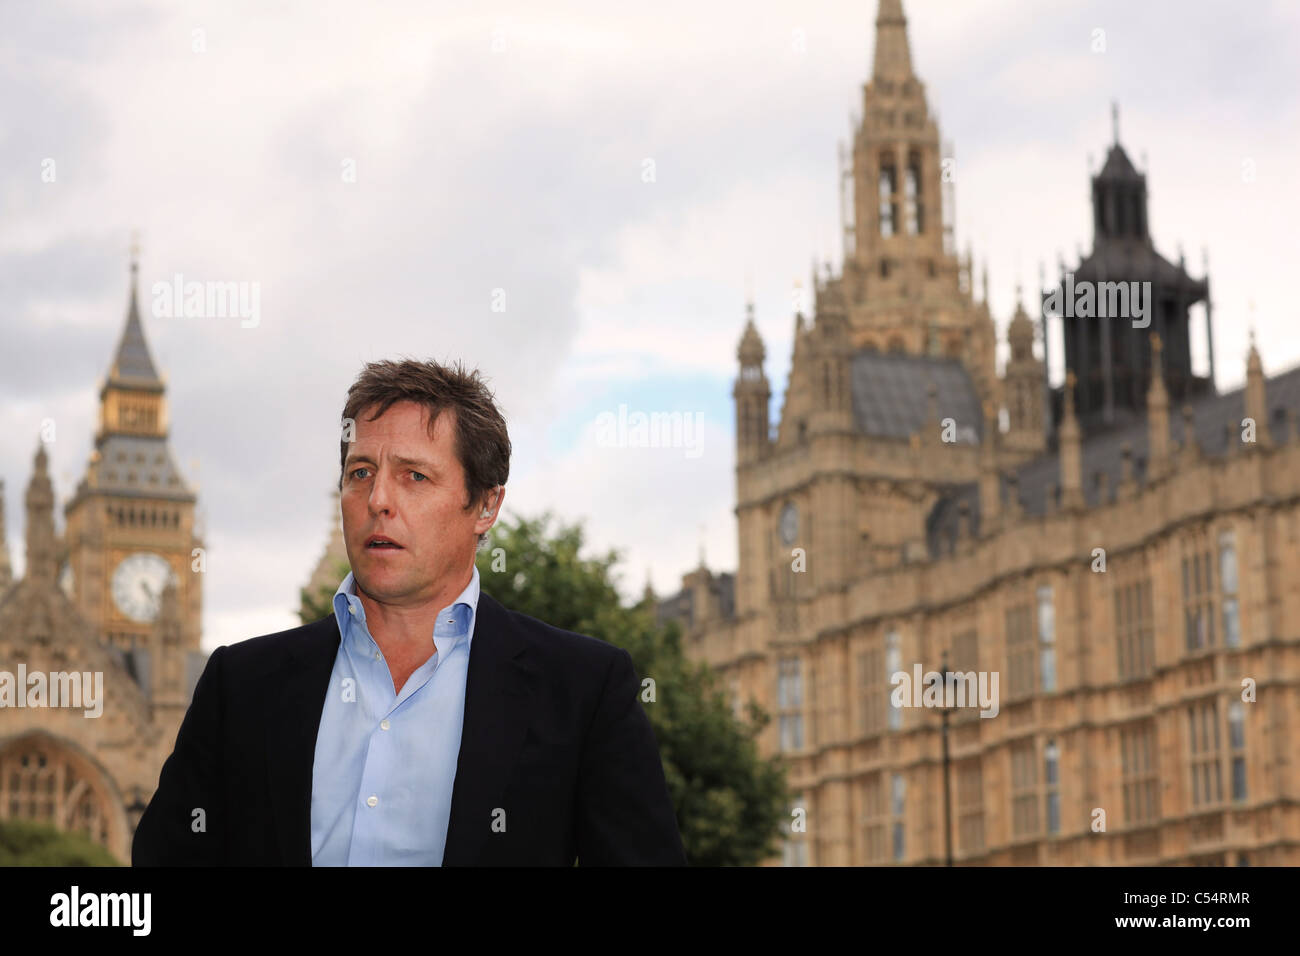 Actor Hugh Grant during a protest against telephone hacking outside the Houses of Parliament in London - Stock Image